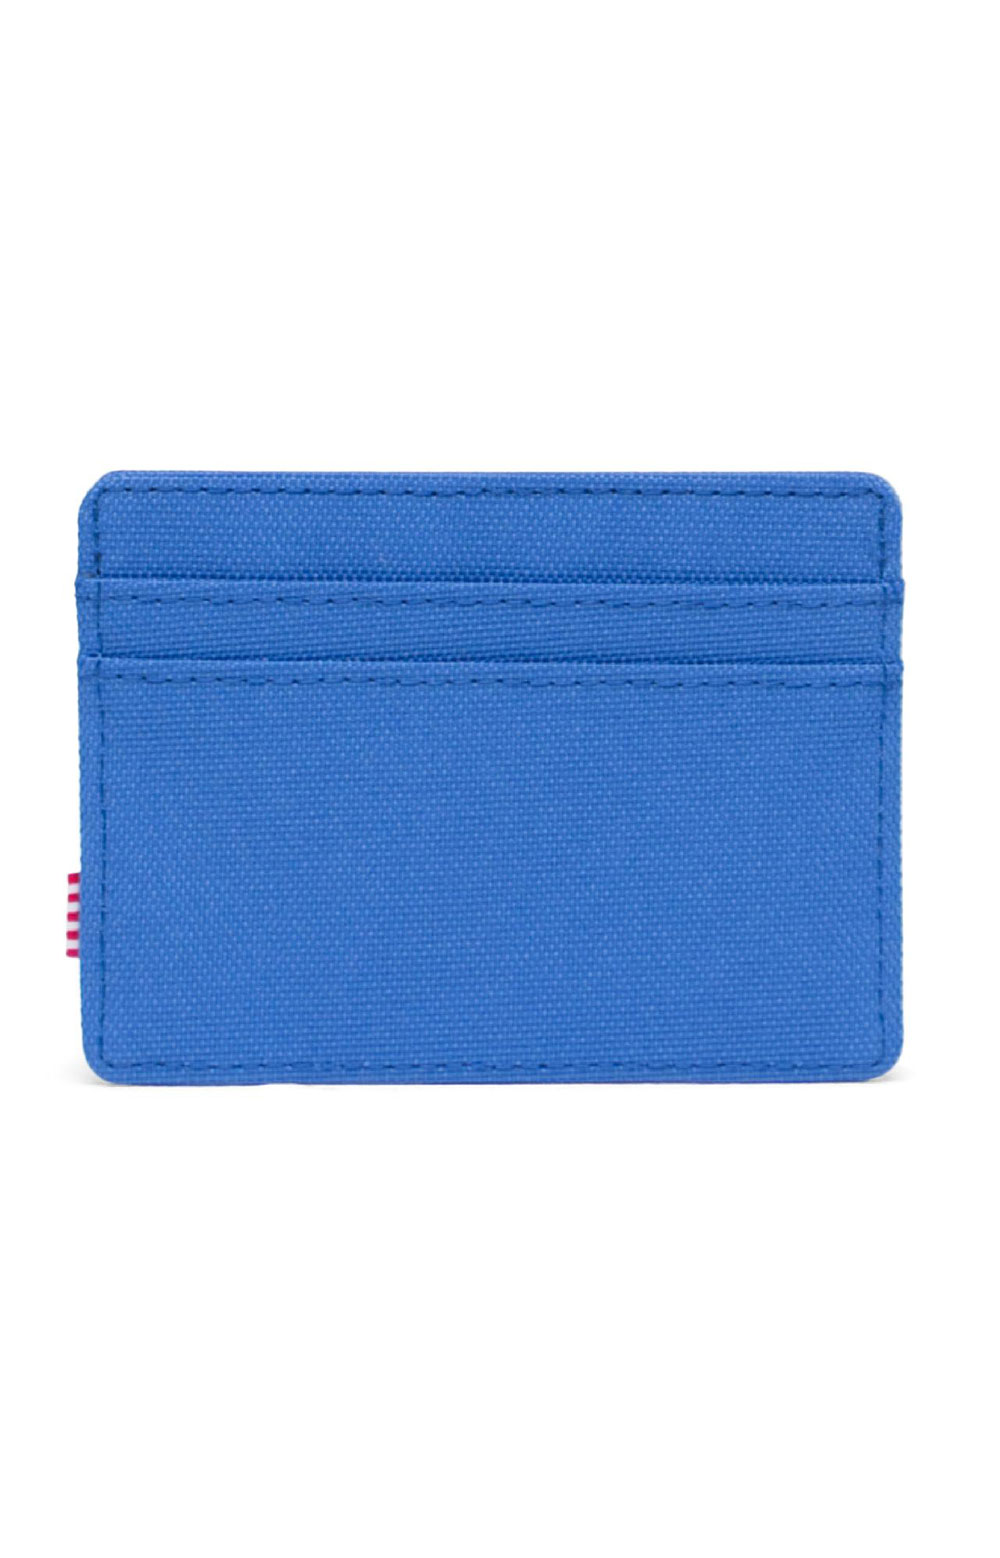 Charlie Wallet - Amparo Blue/Black 3